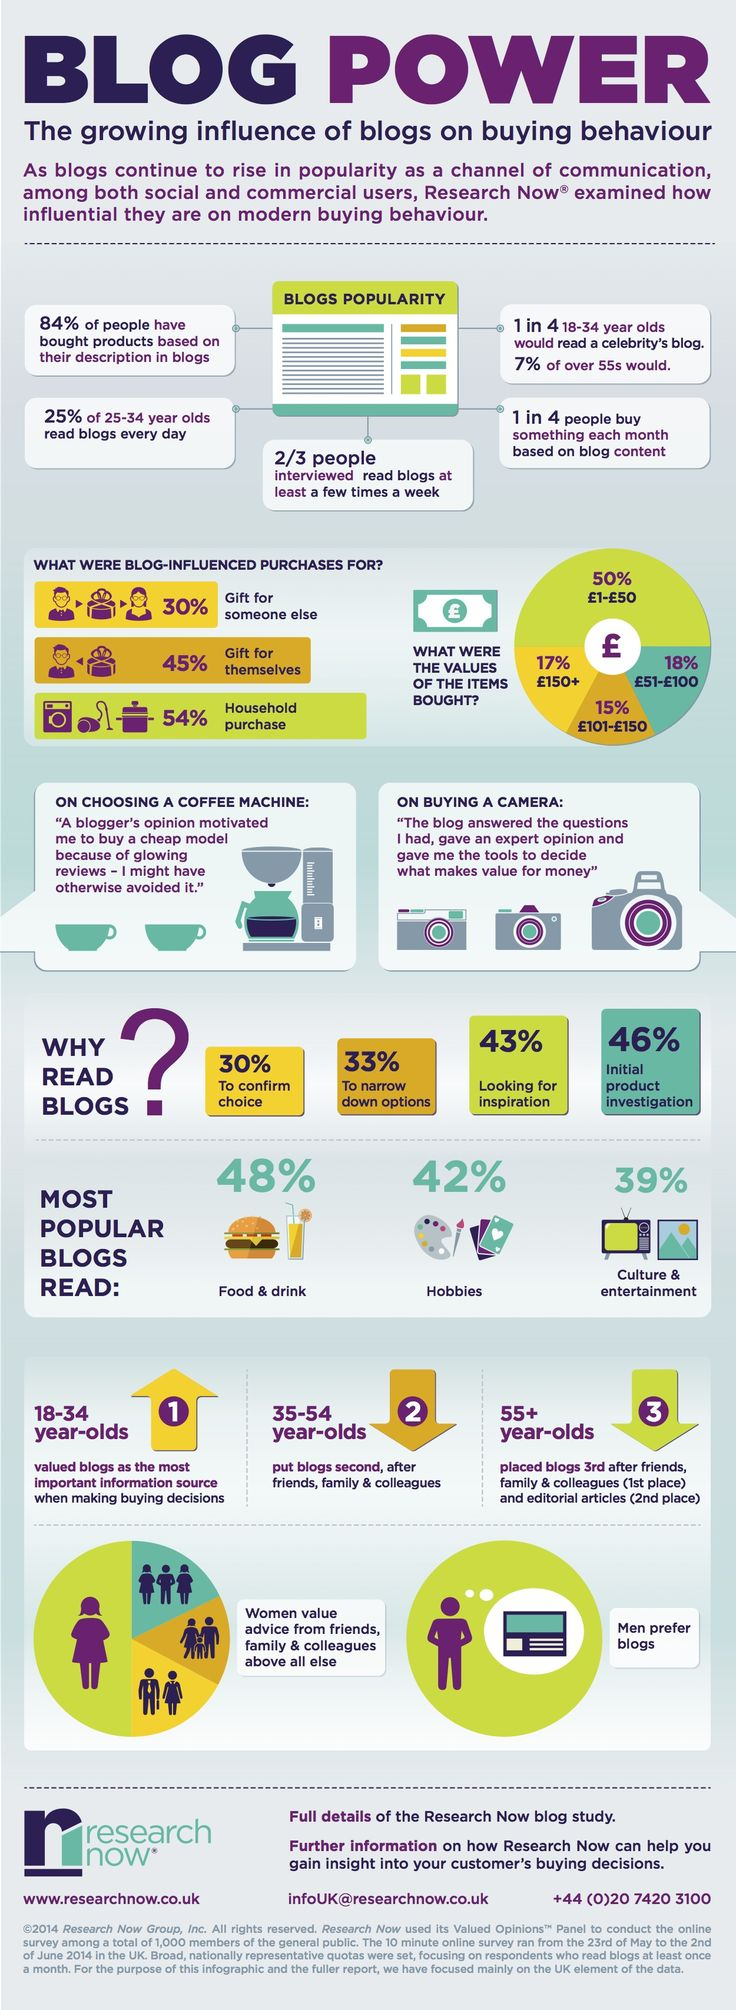 Blog Power [infogrpahic] How blogging influences purchases in the UK